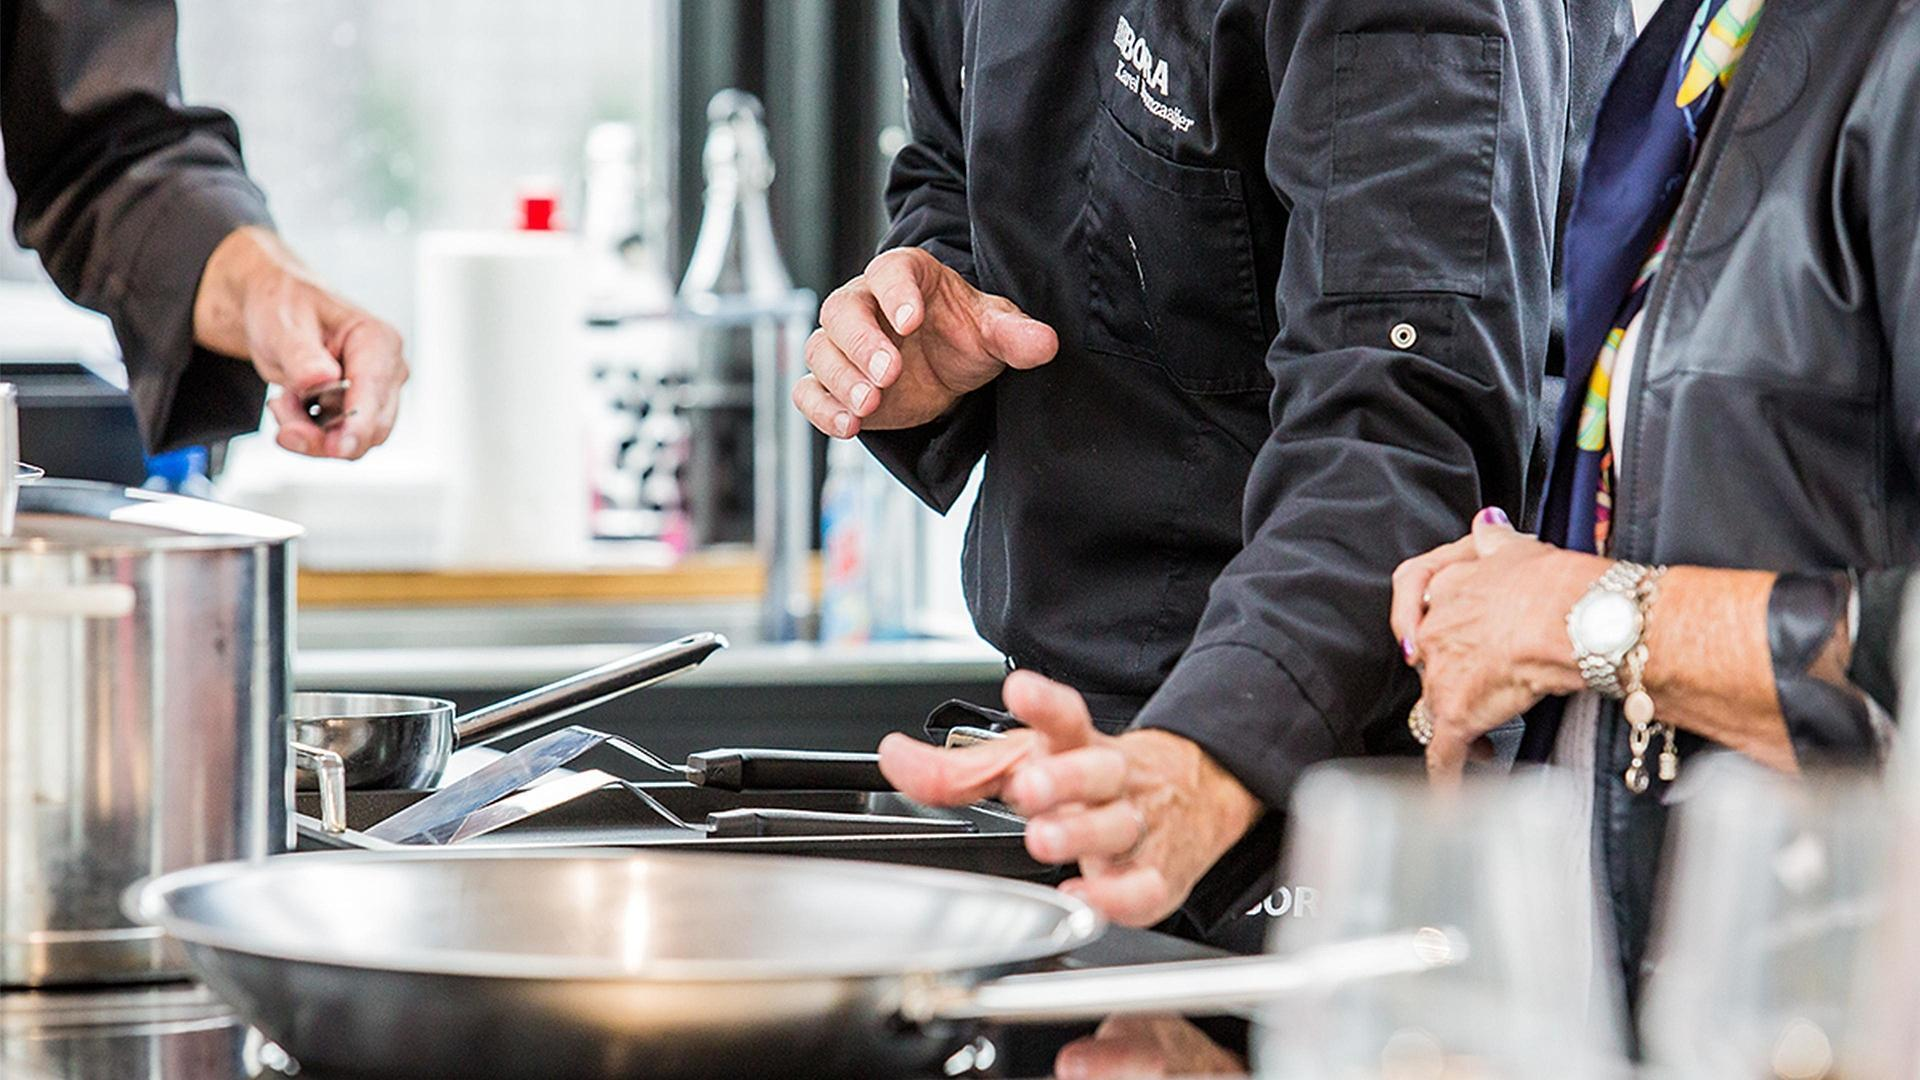 BORA COOKING DEMONSTRATION, SYDNEY Wednesday 10th February